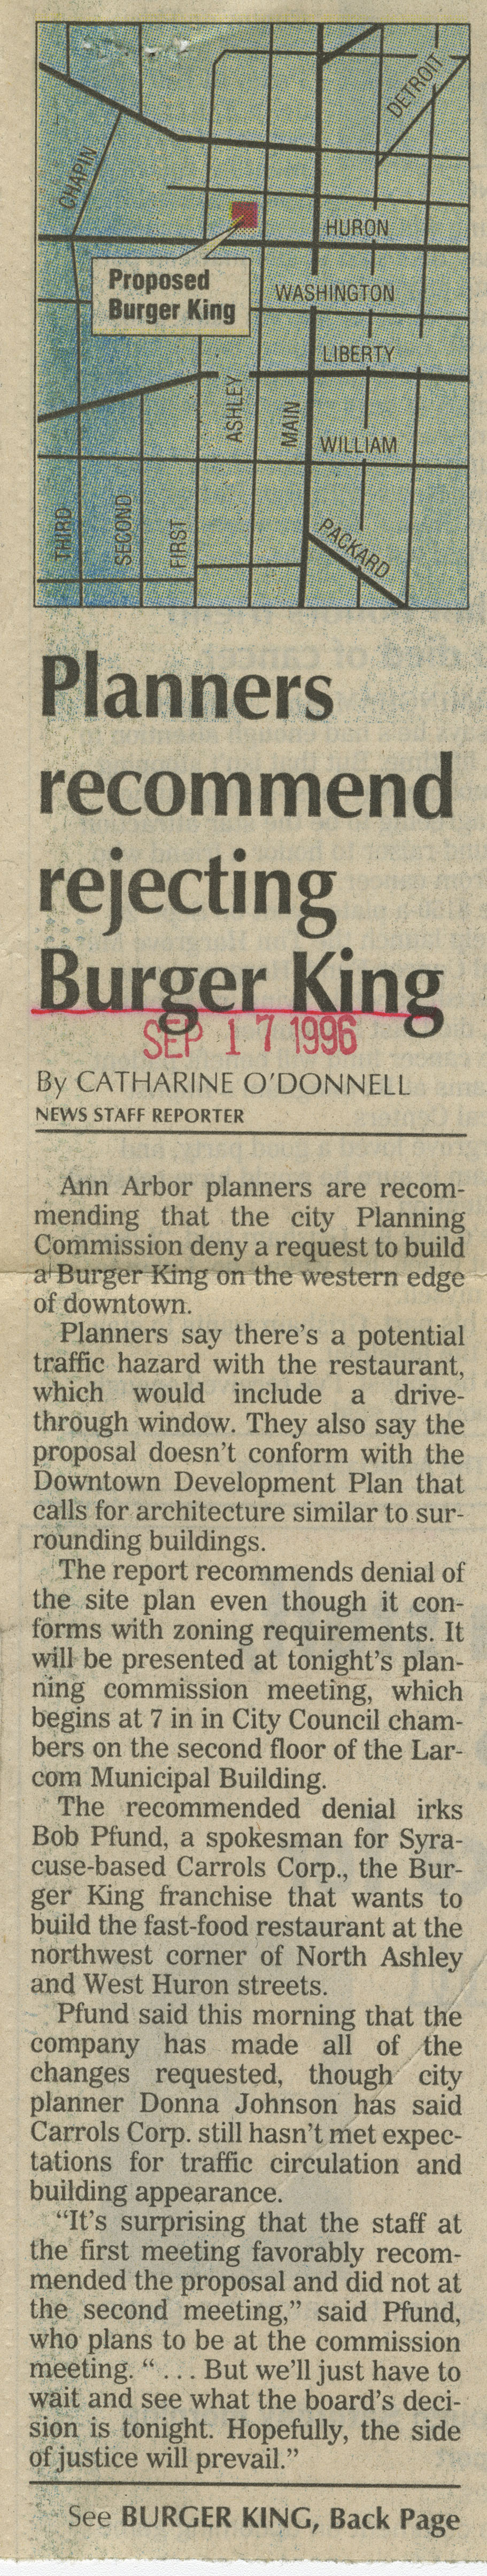 Planners recommend rejecting Burger King image